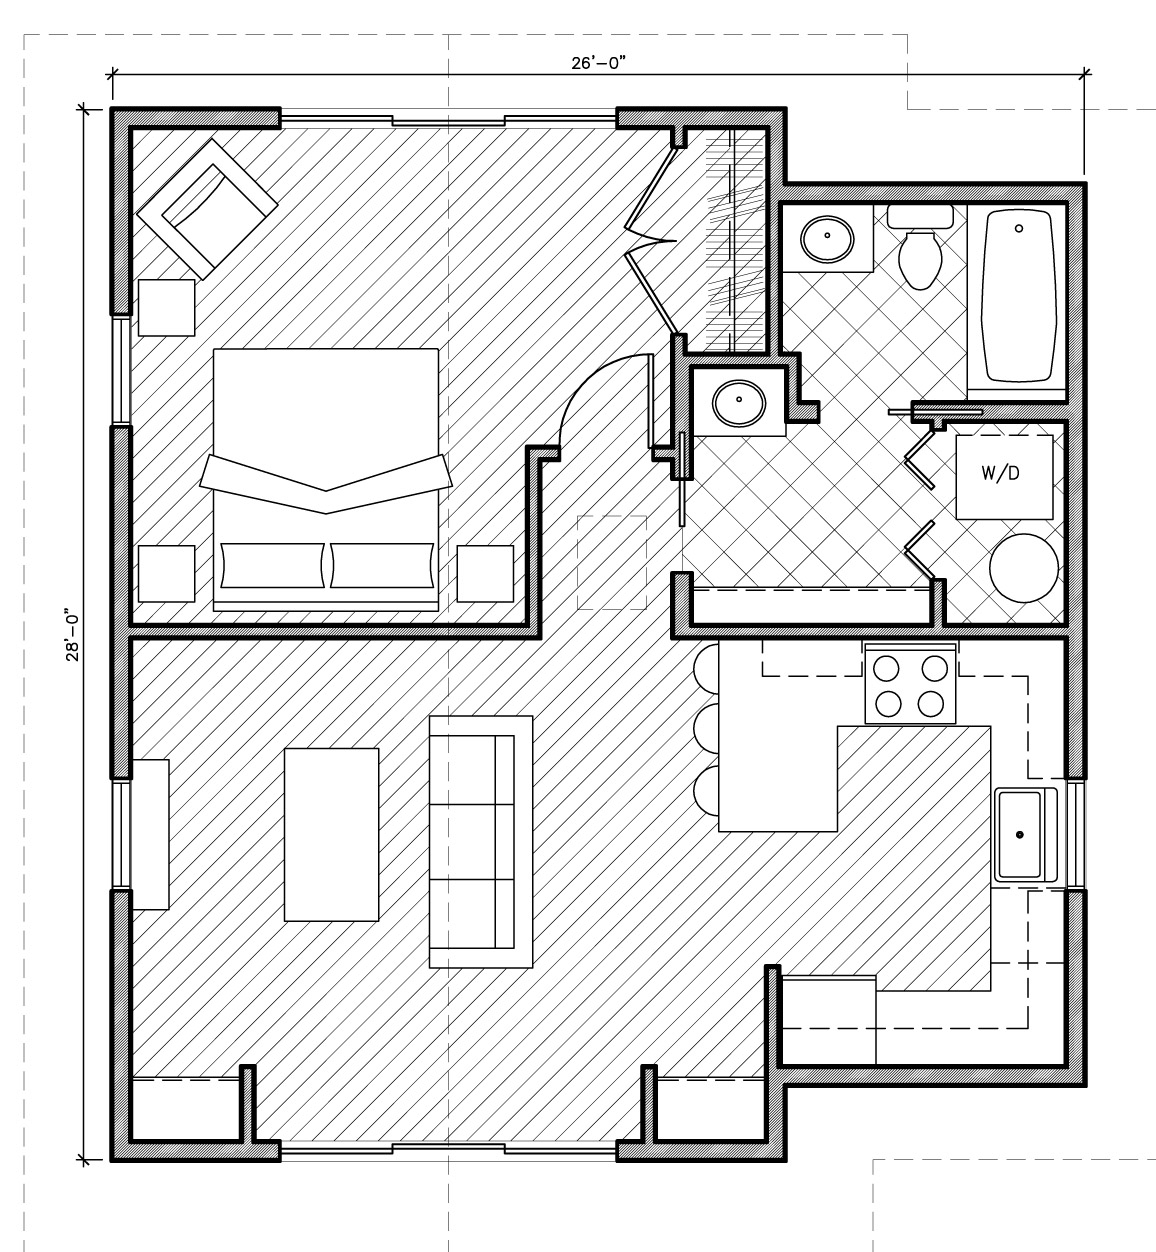 Design banter home plan collection for Small house plans under 700 sq ft